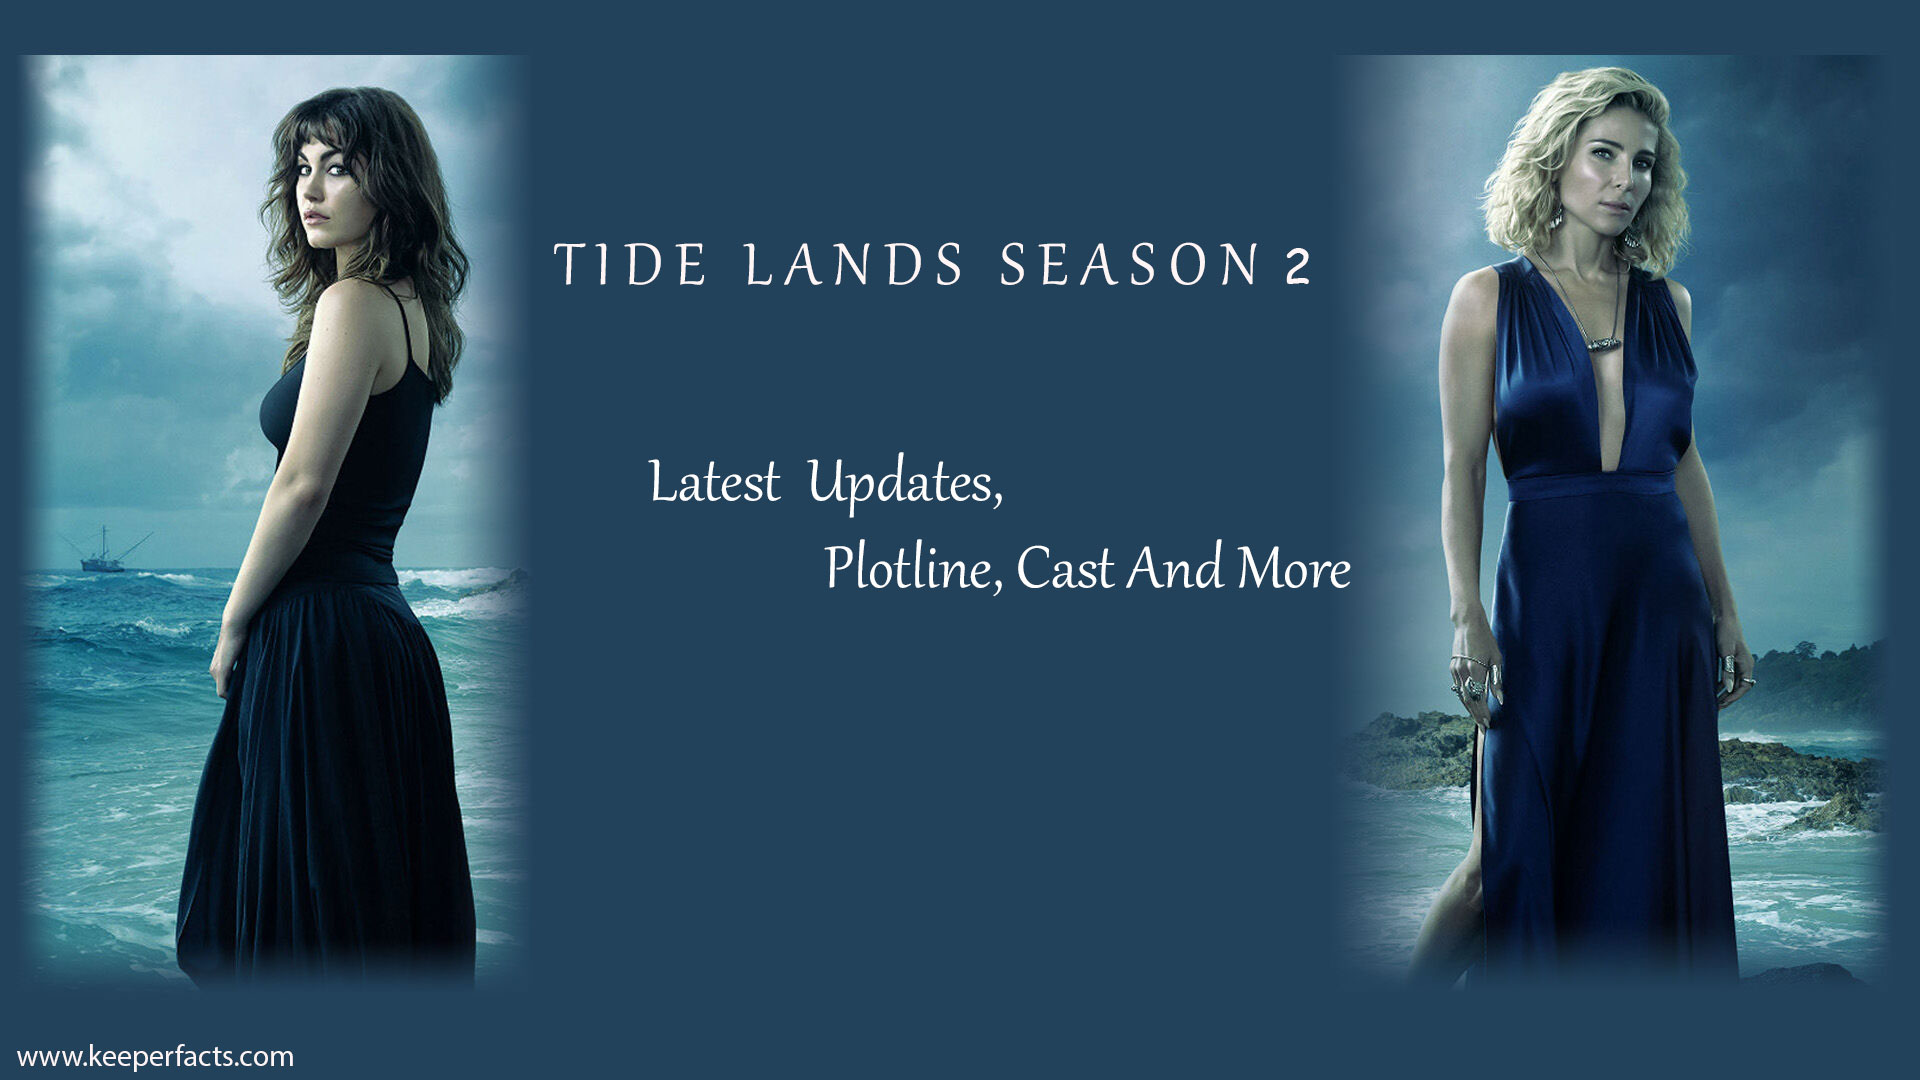 Tide Lands Season 2